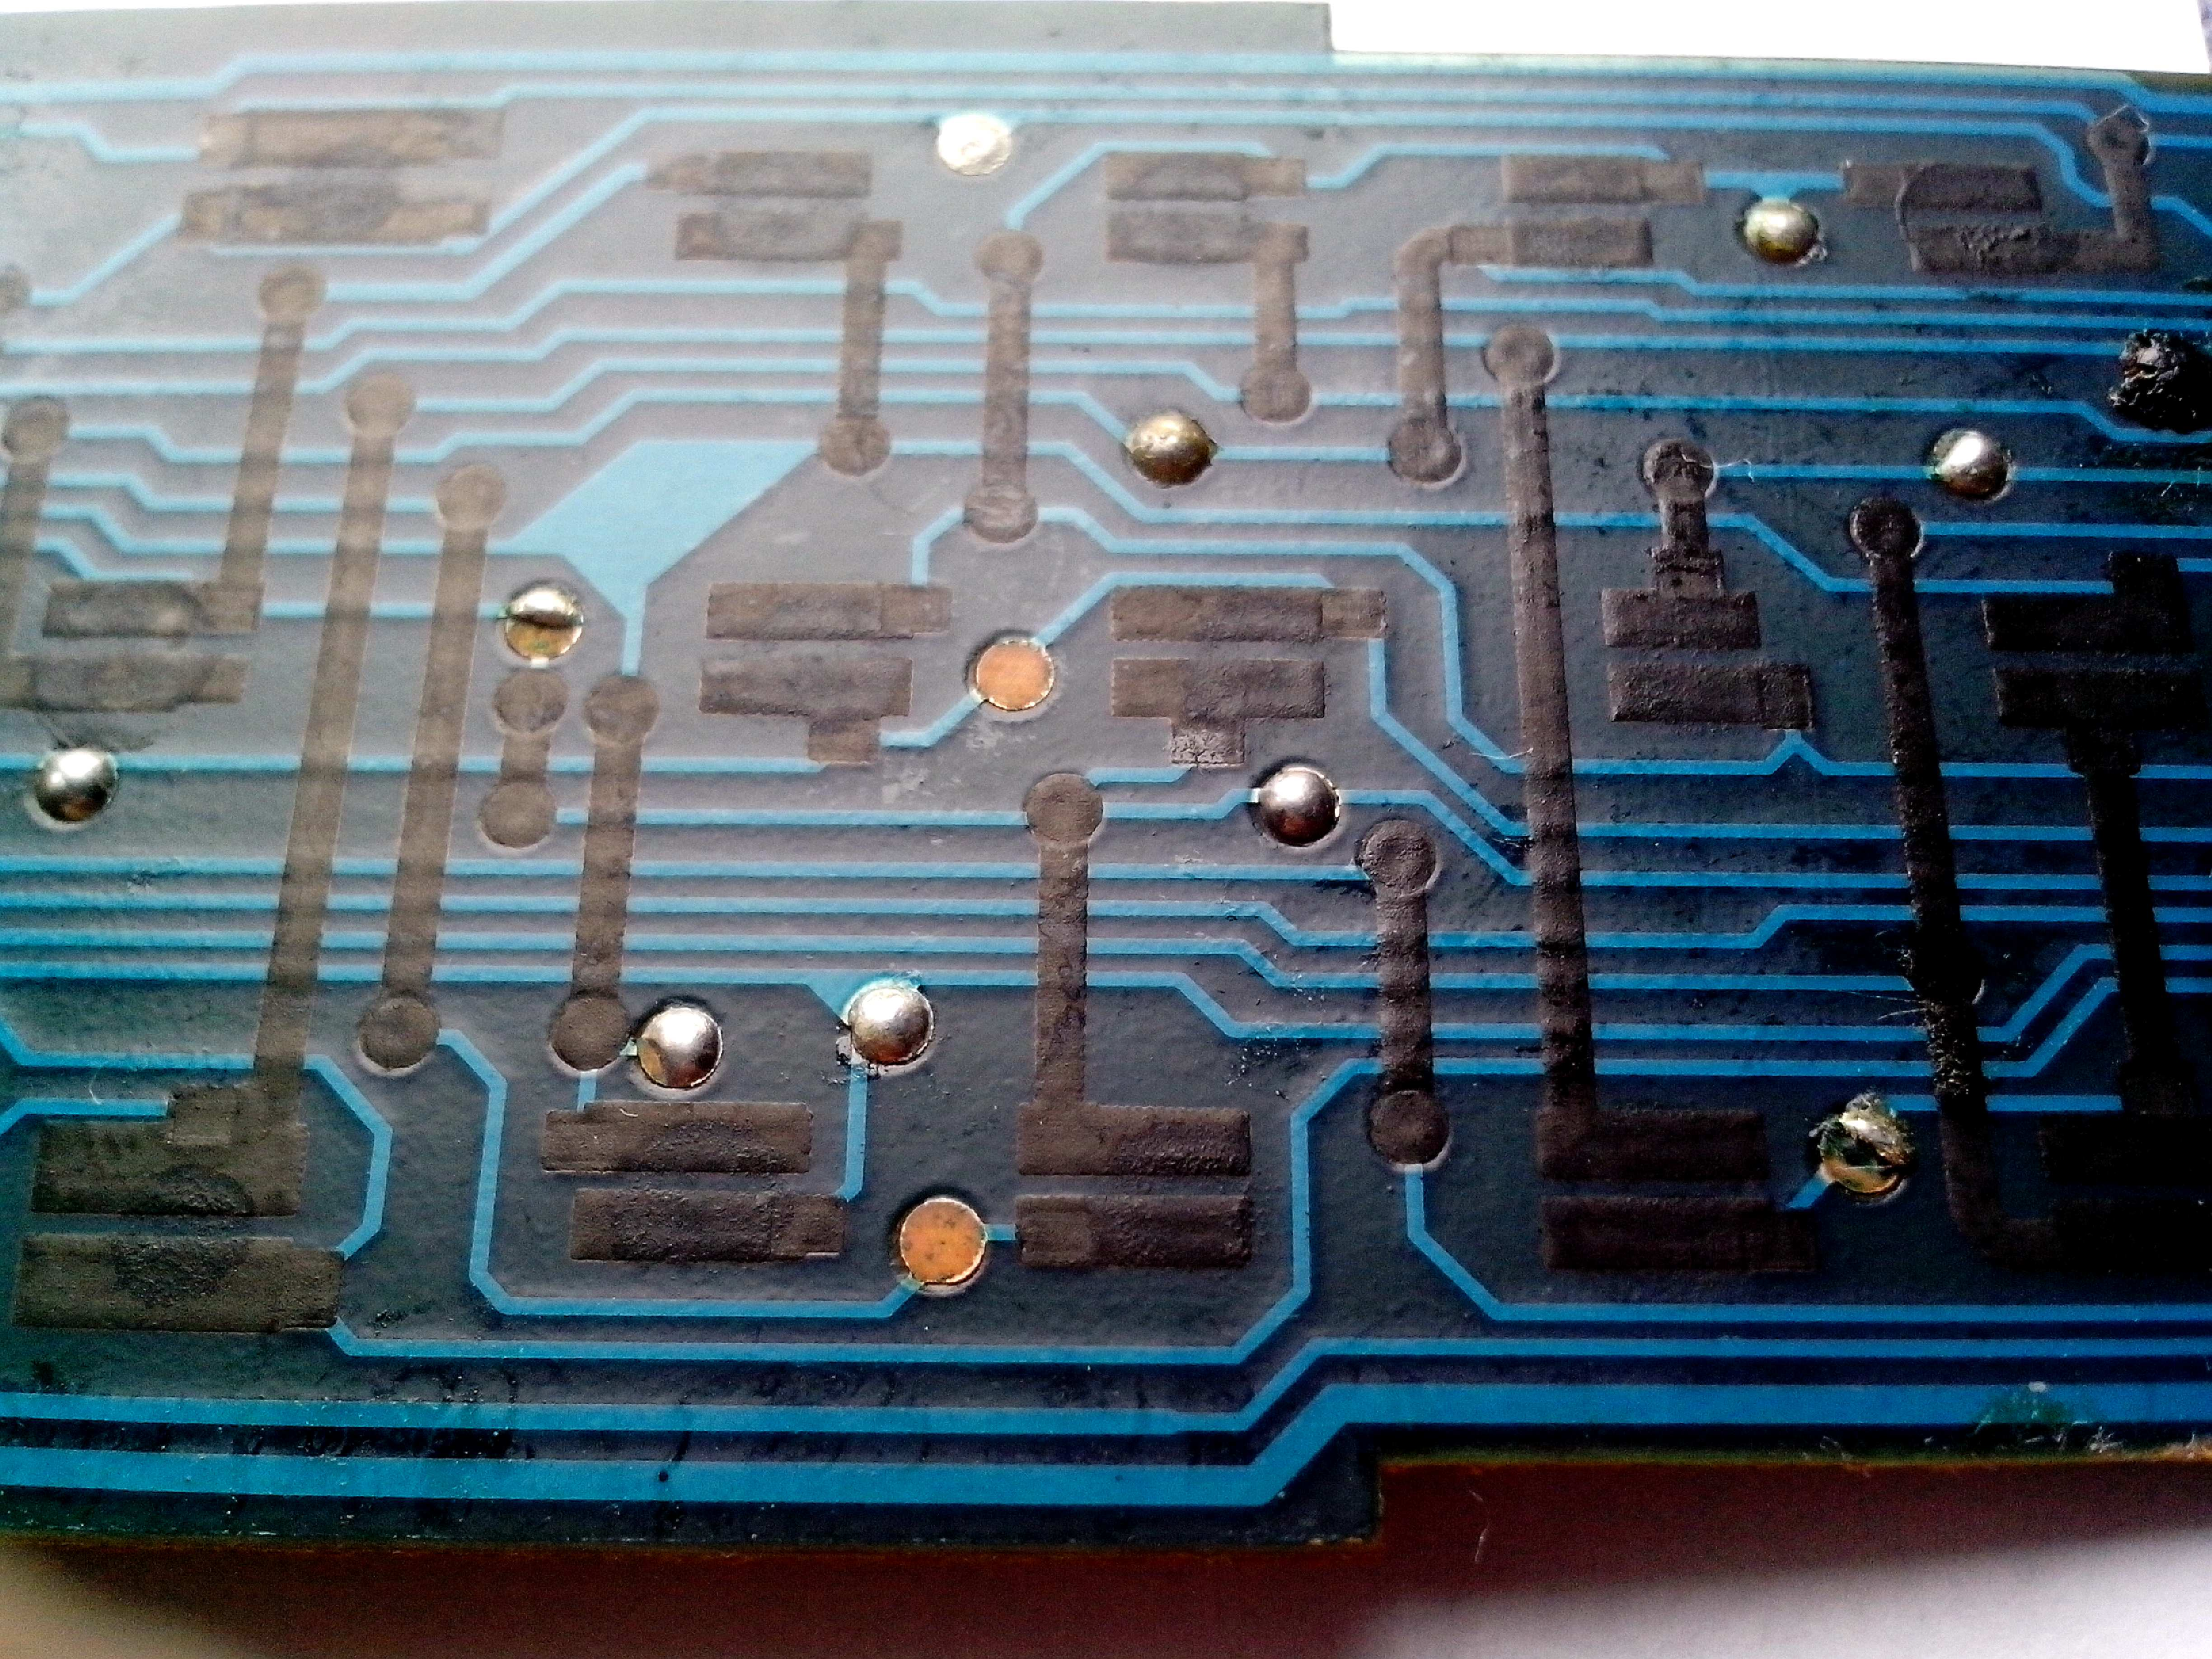 Free photograph; remote, control, motherboard